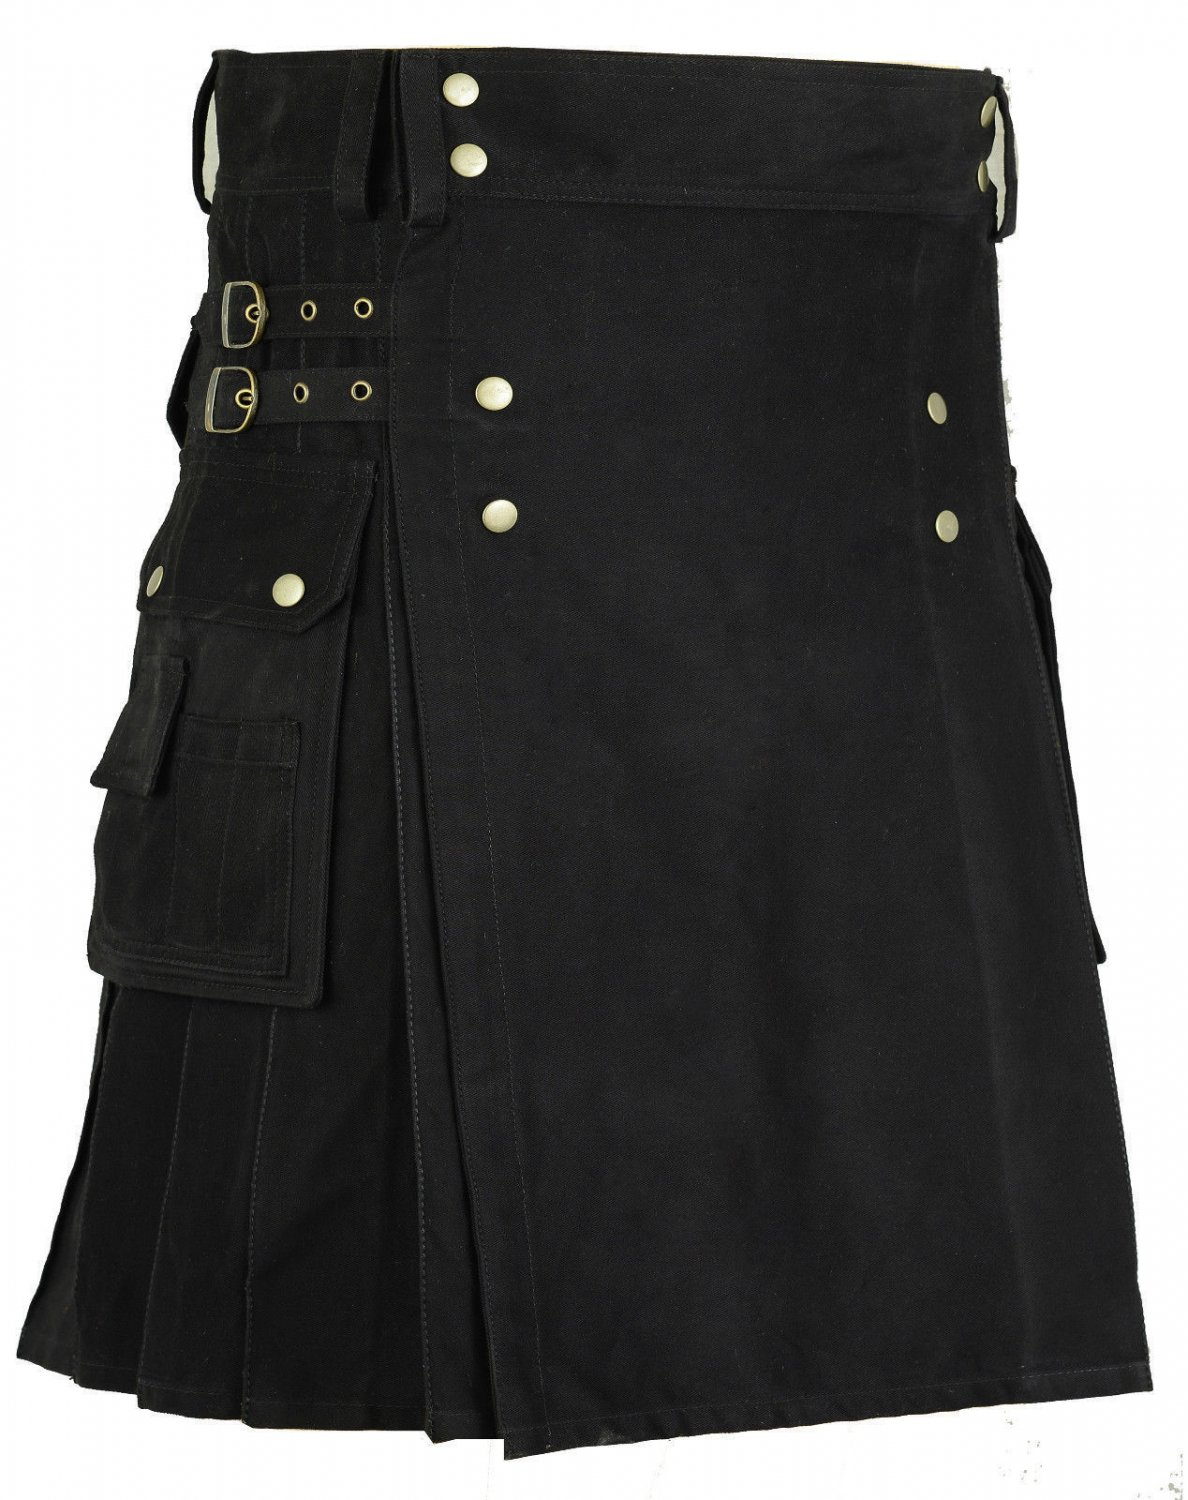 Size 32 New Scottish Cotton Kilt Deluxe Goth Outdoor Utility Kilts Highland Skirt